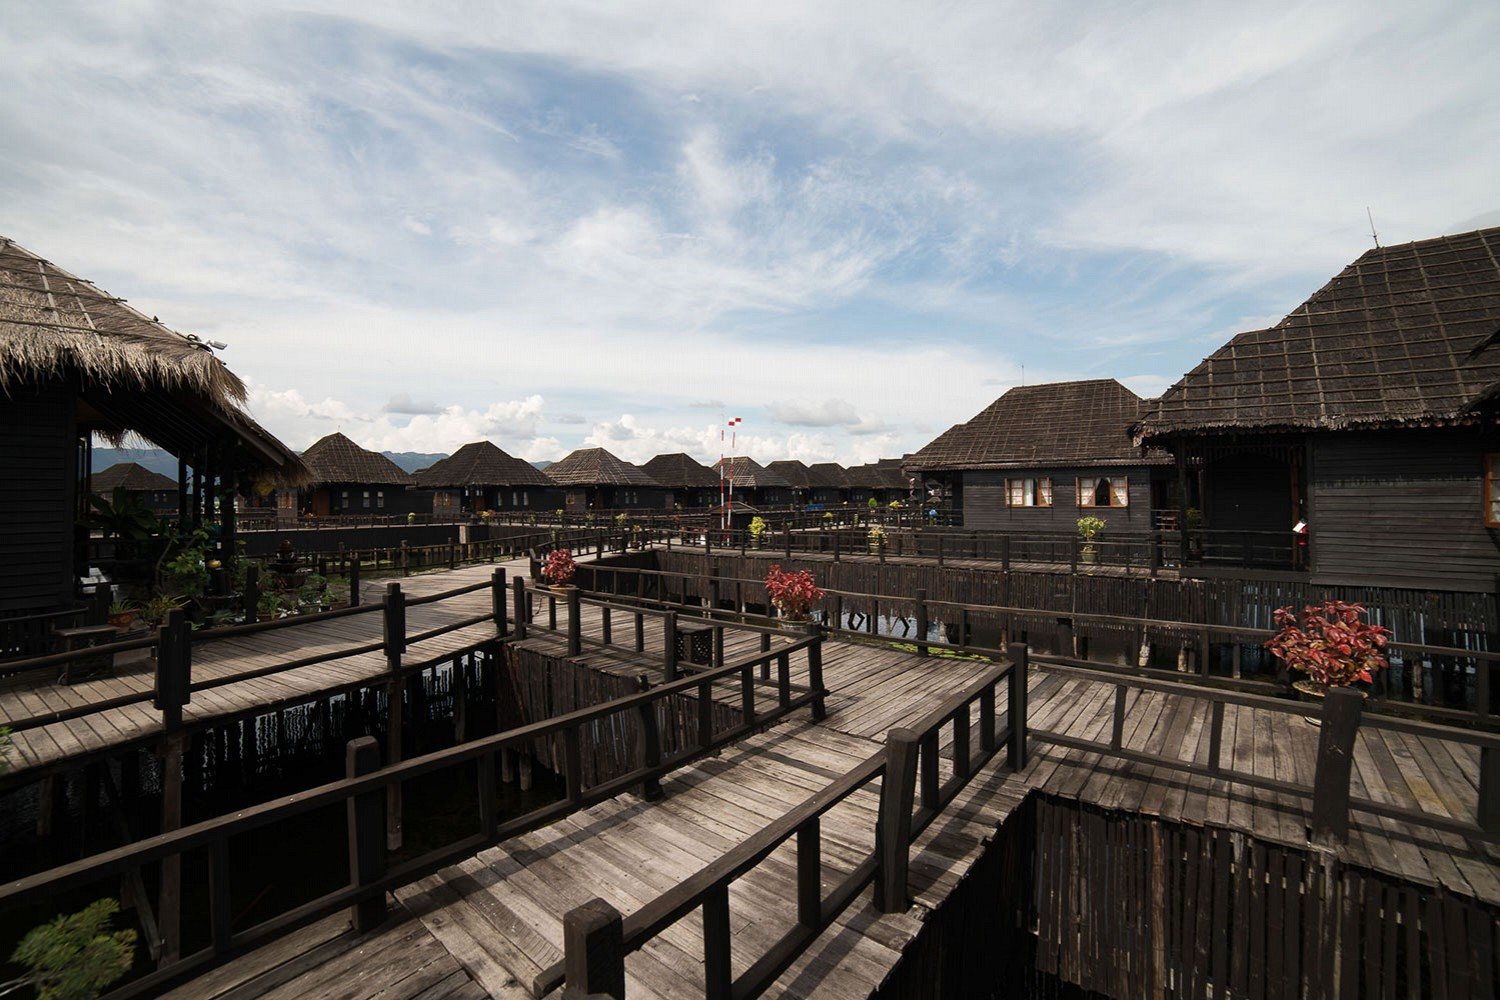 Inle Lake, Inle lake resort Myanmar